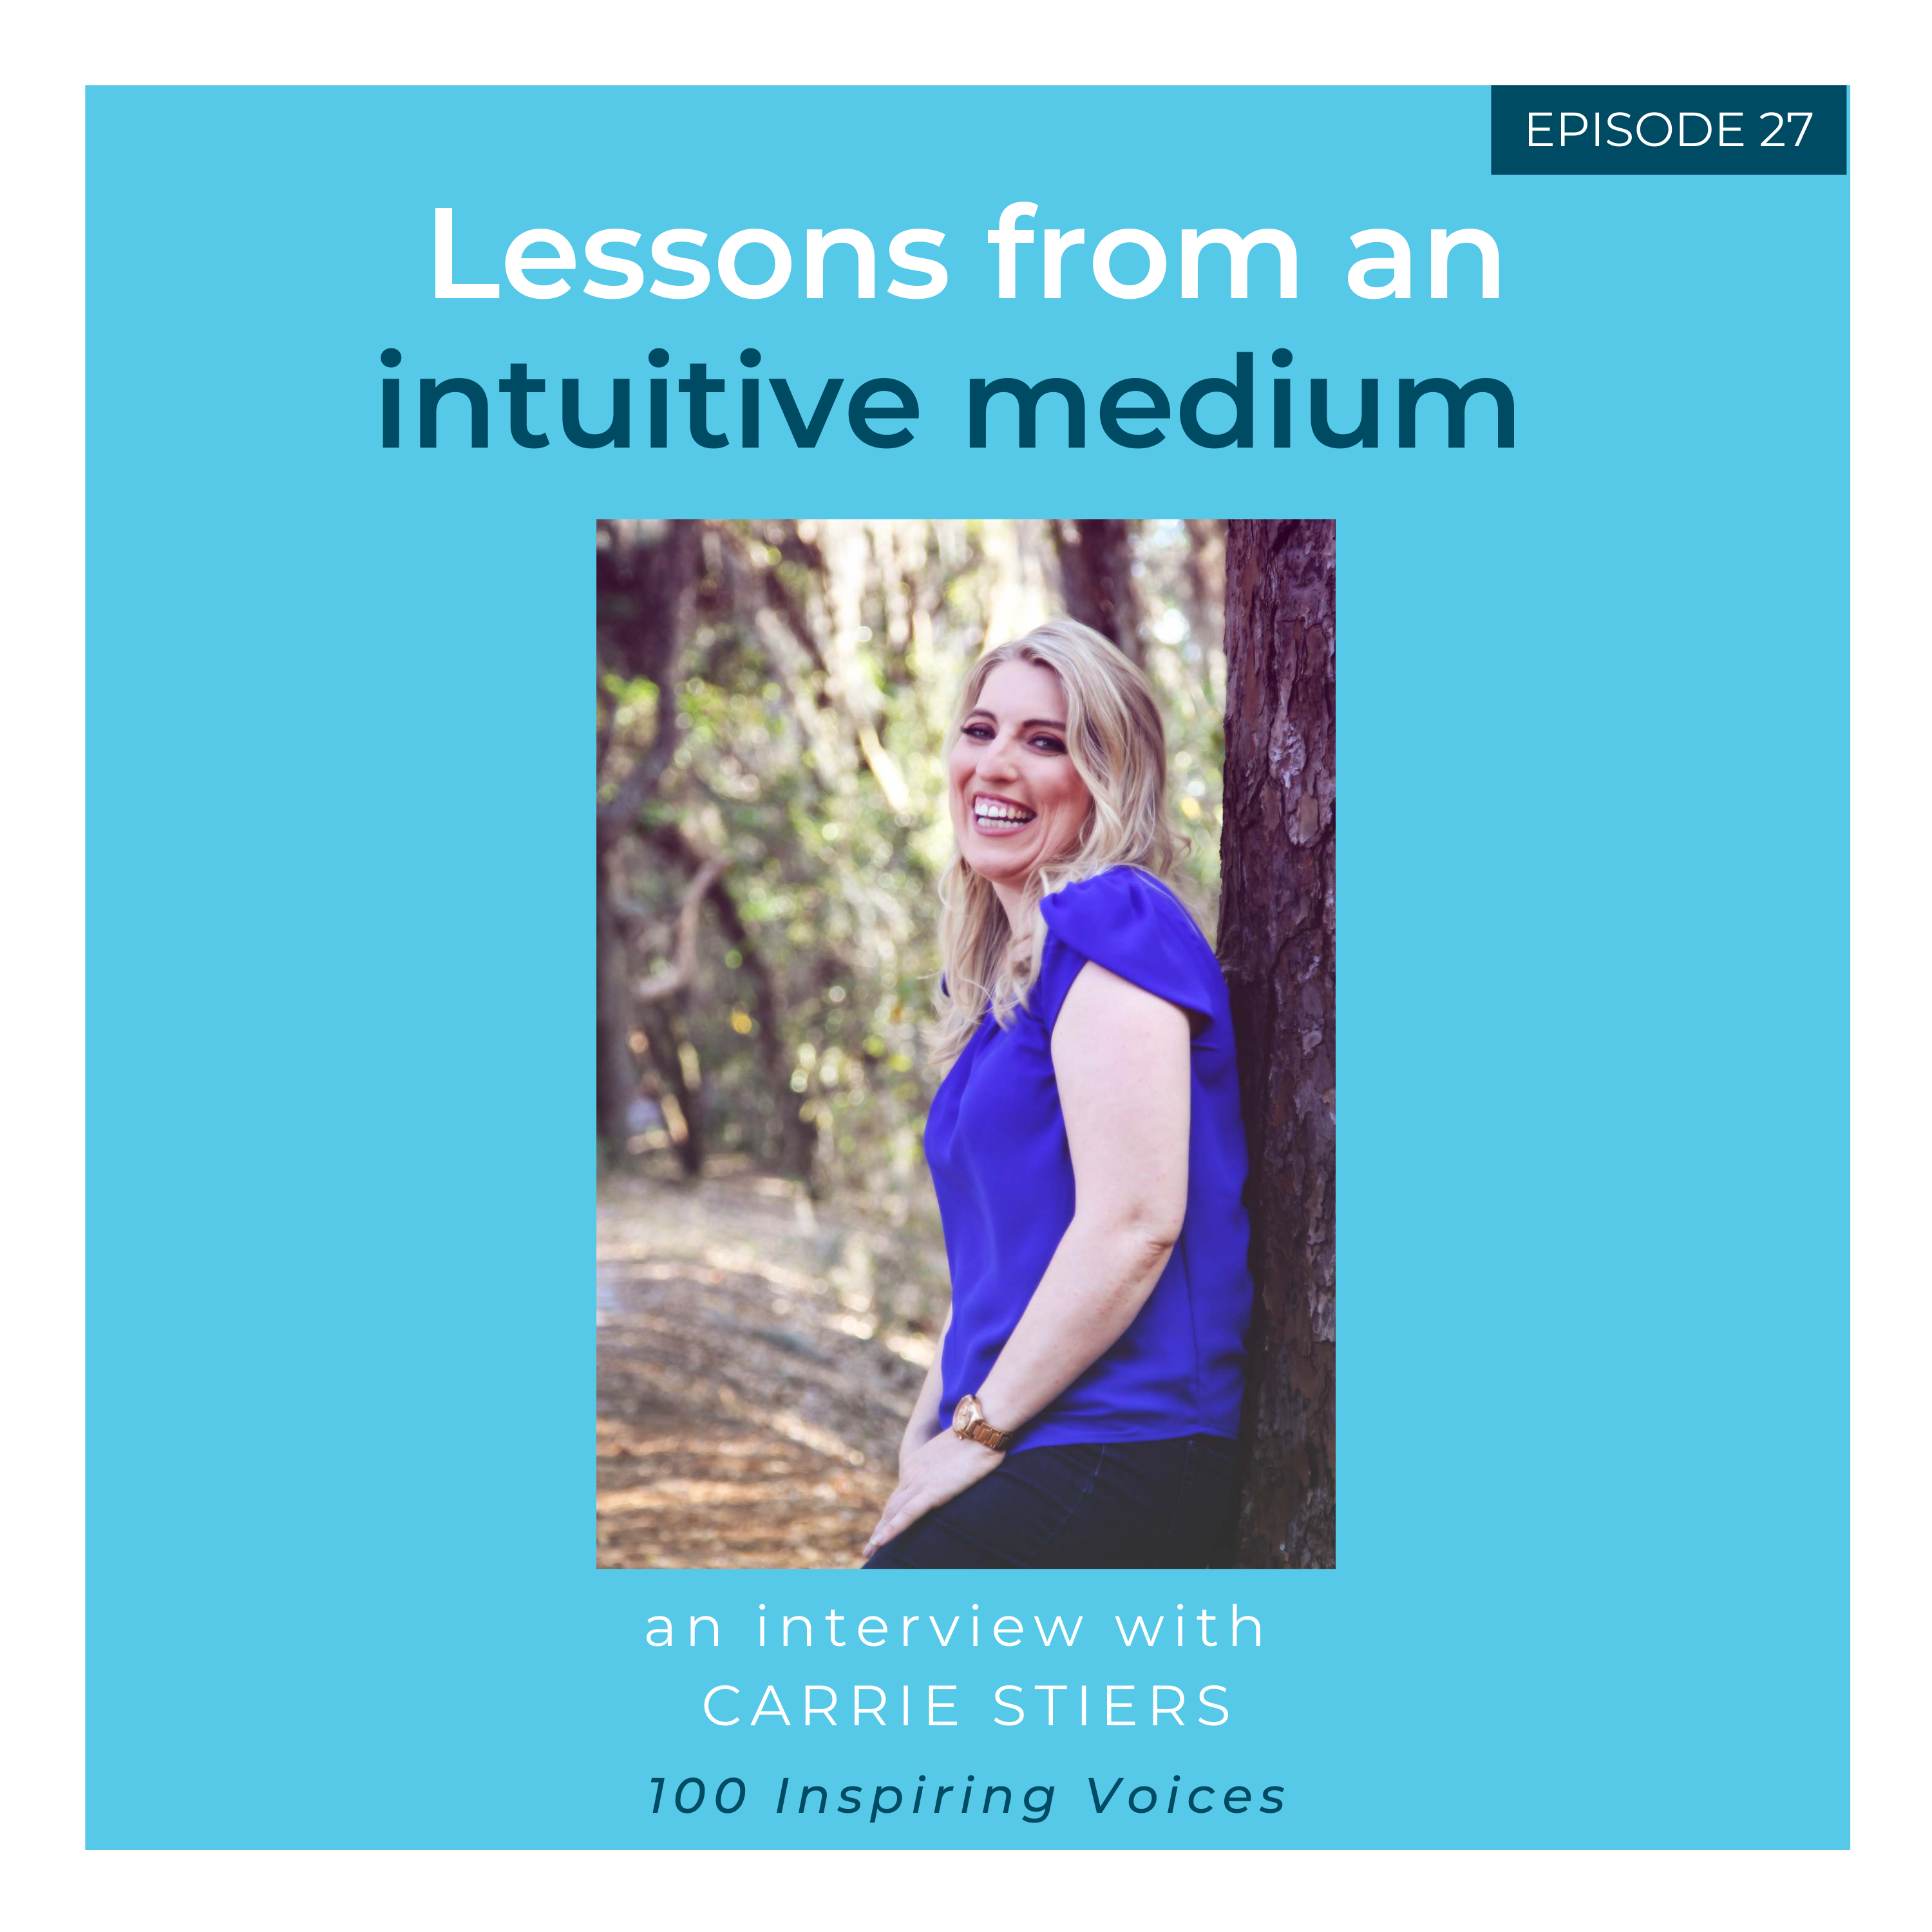 100 Inspiring Voices | Episode #27 | Carrie Stiers | Lessons from an intuitive medium